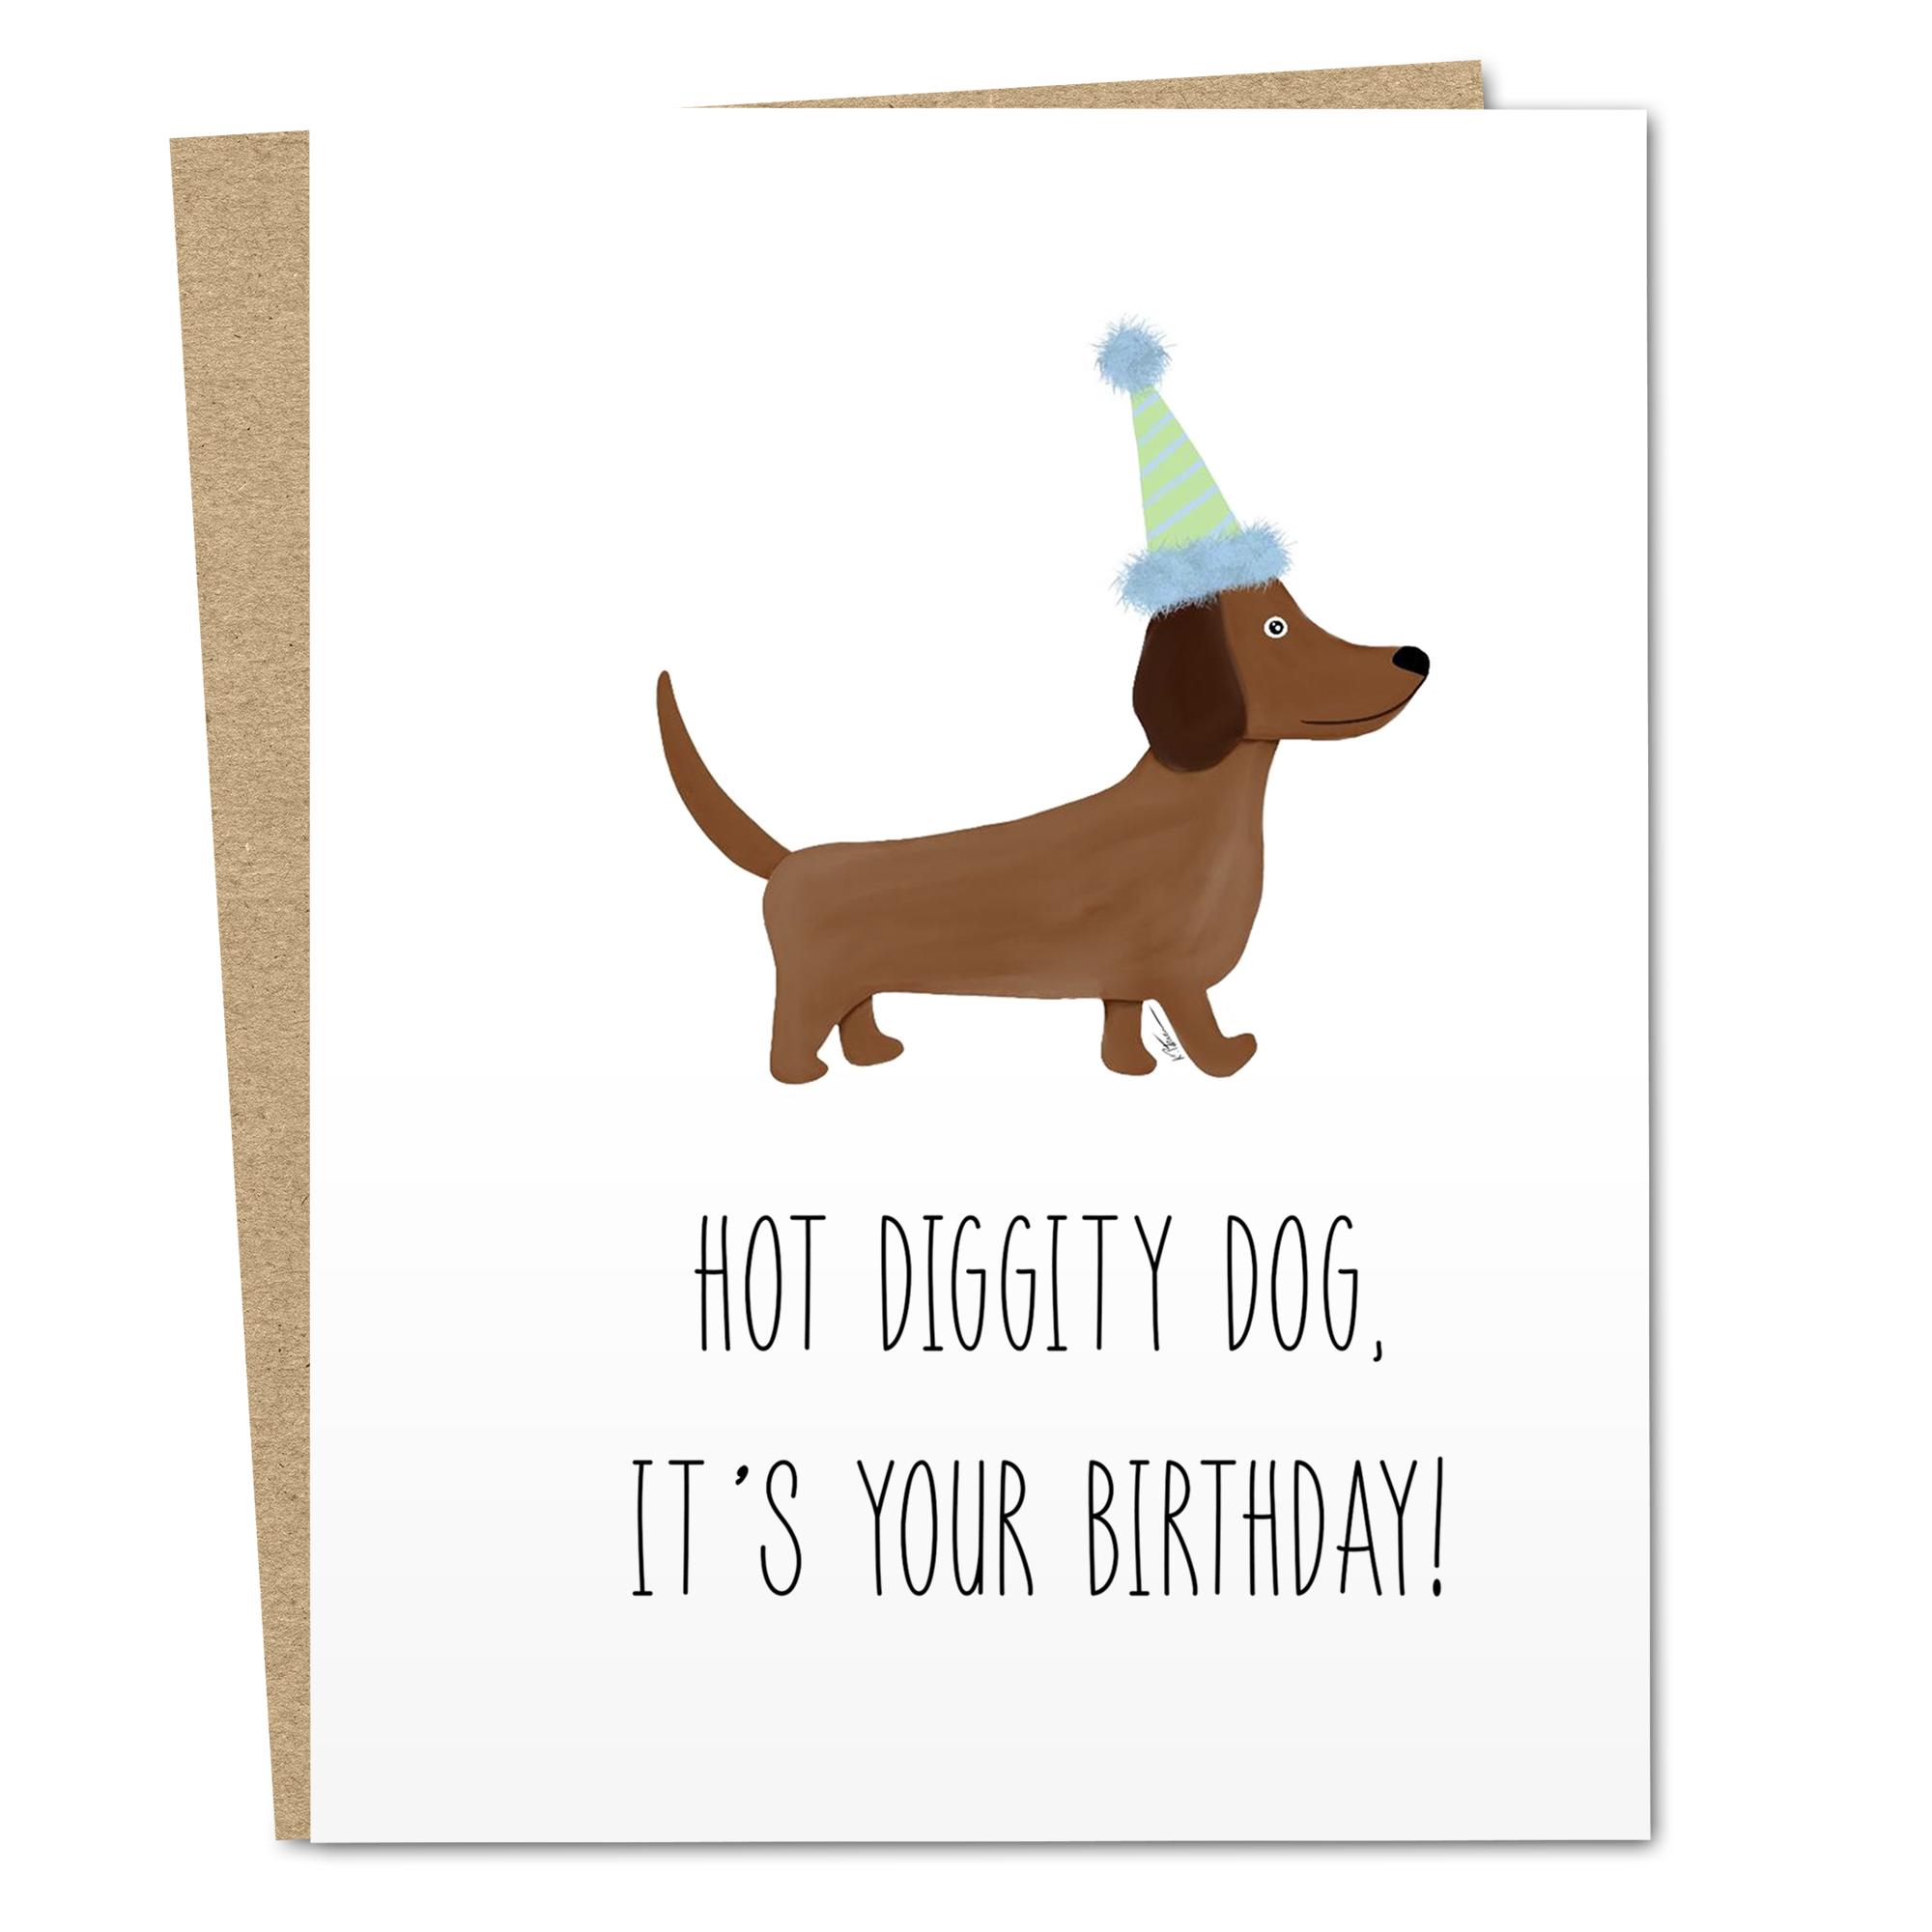 Hot Diggity Dog, It's Your Birthday - The Good Snail